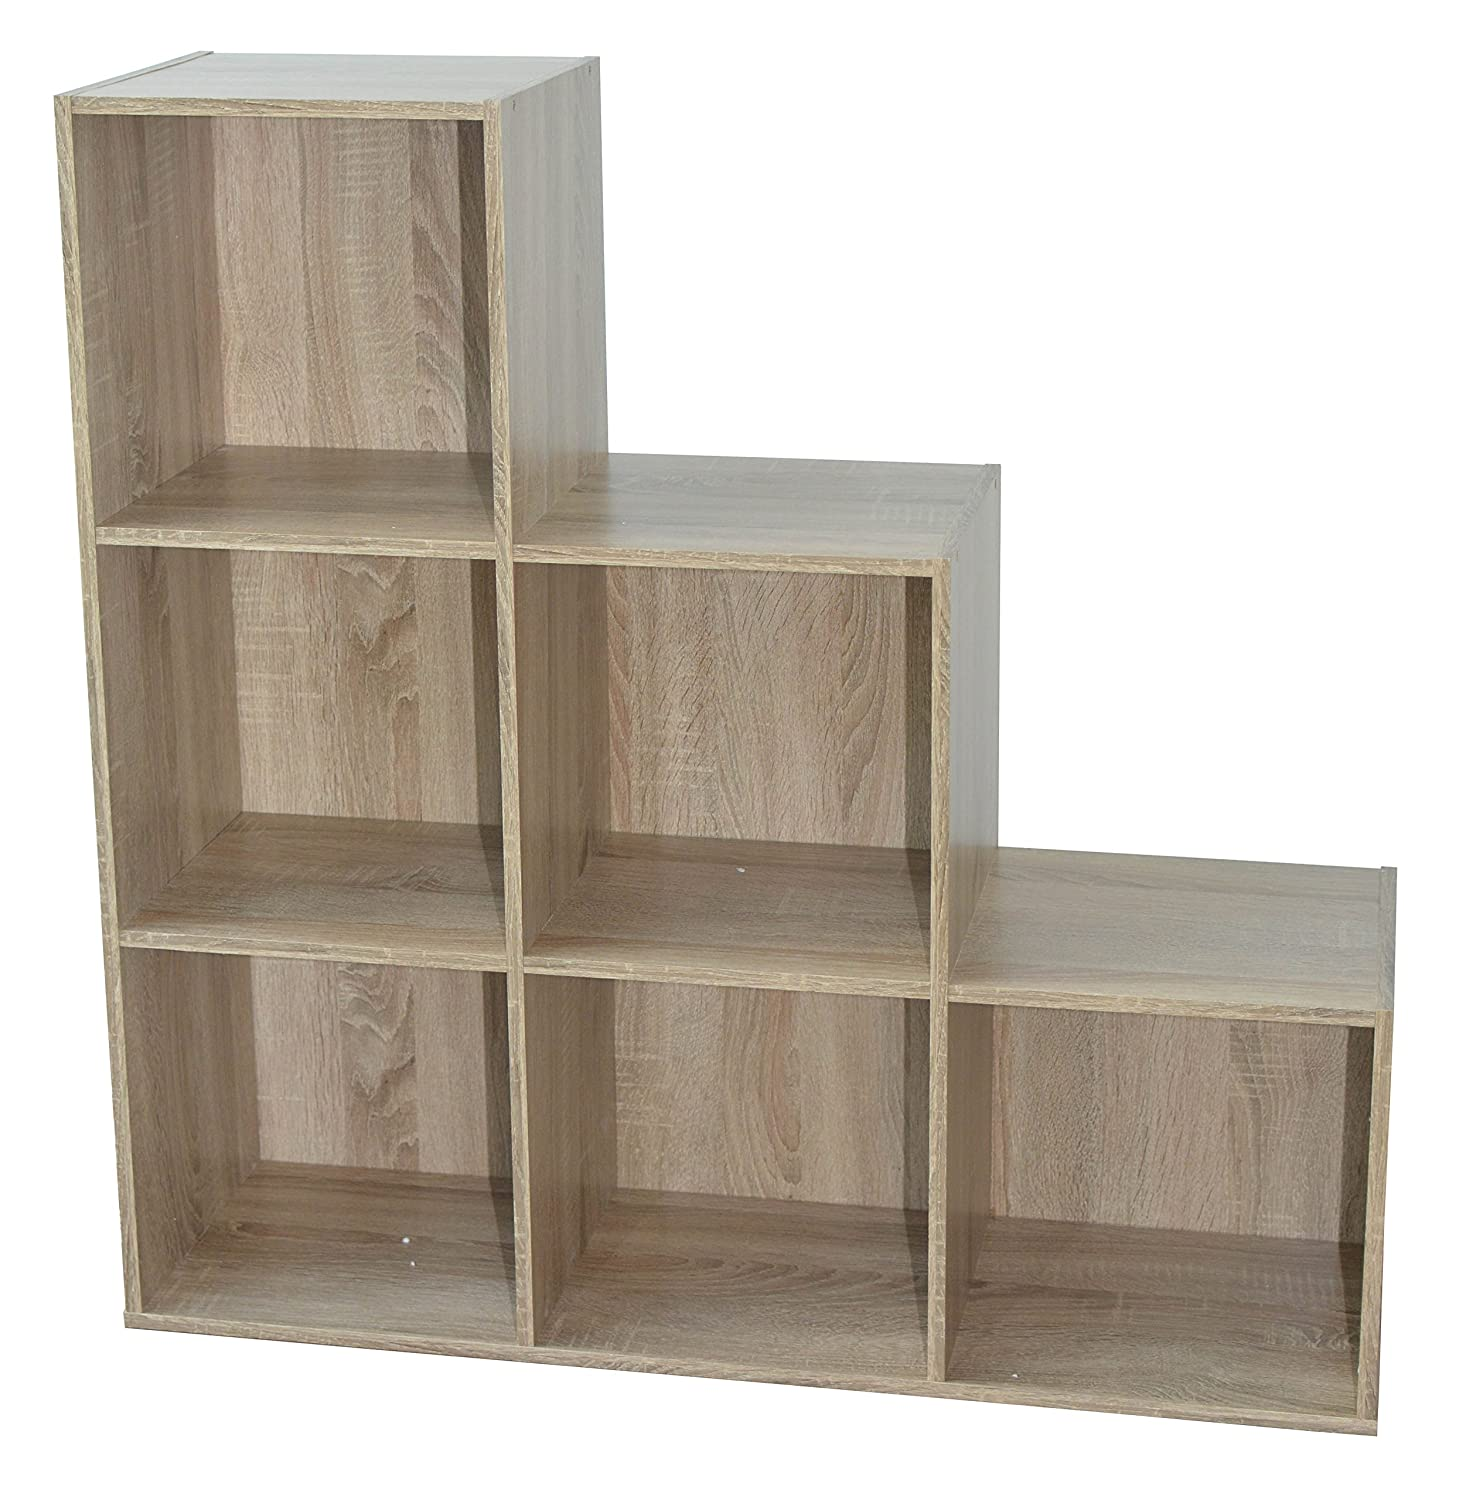 Preview - Ikea meuble cube ...